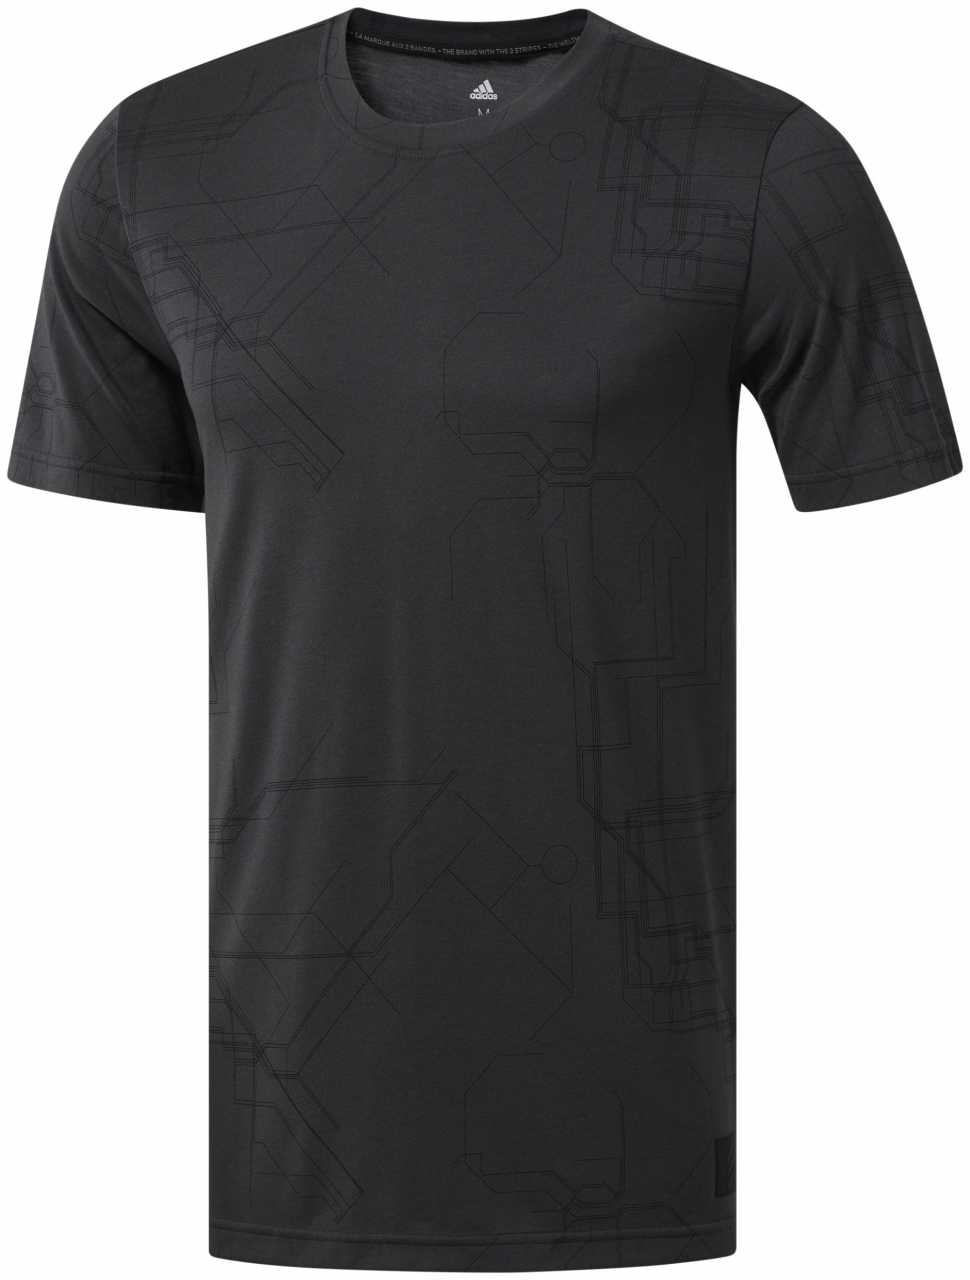 Adidas Adicross Allover Graphic T-shirt Herren schwarz